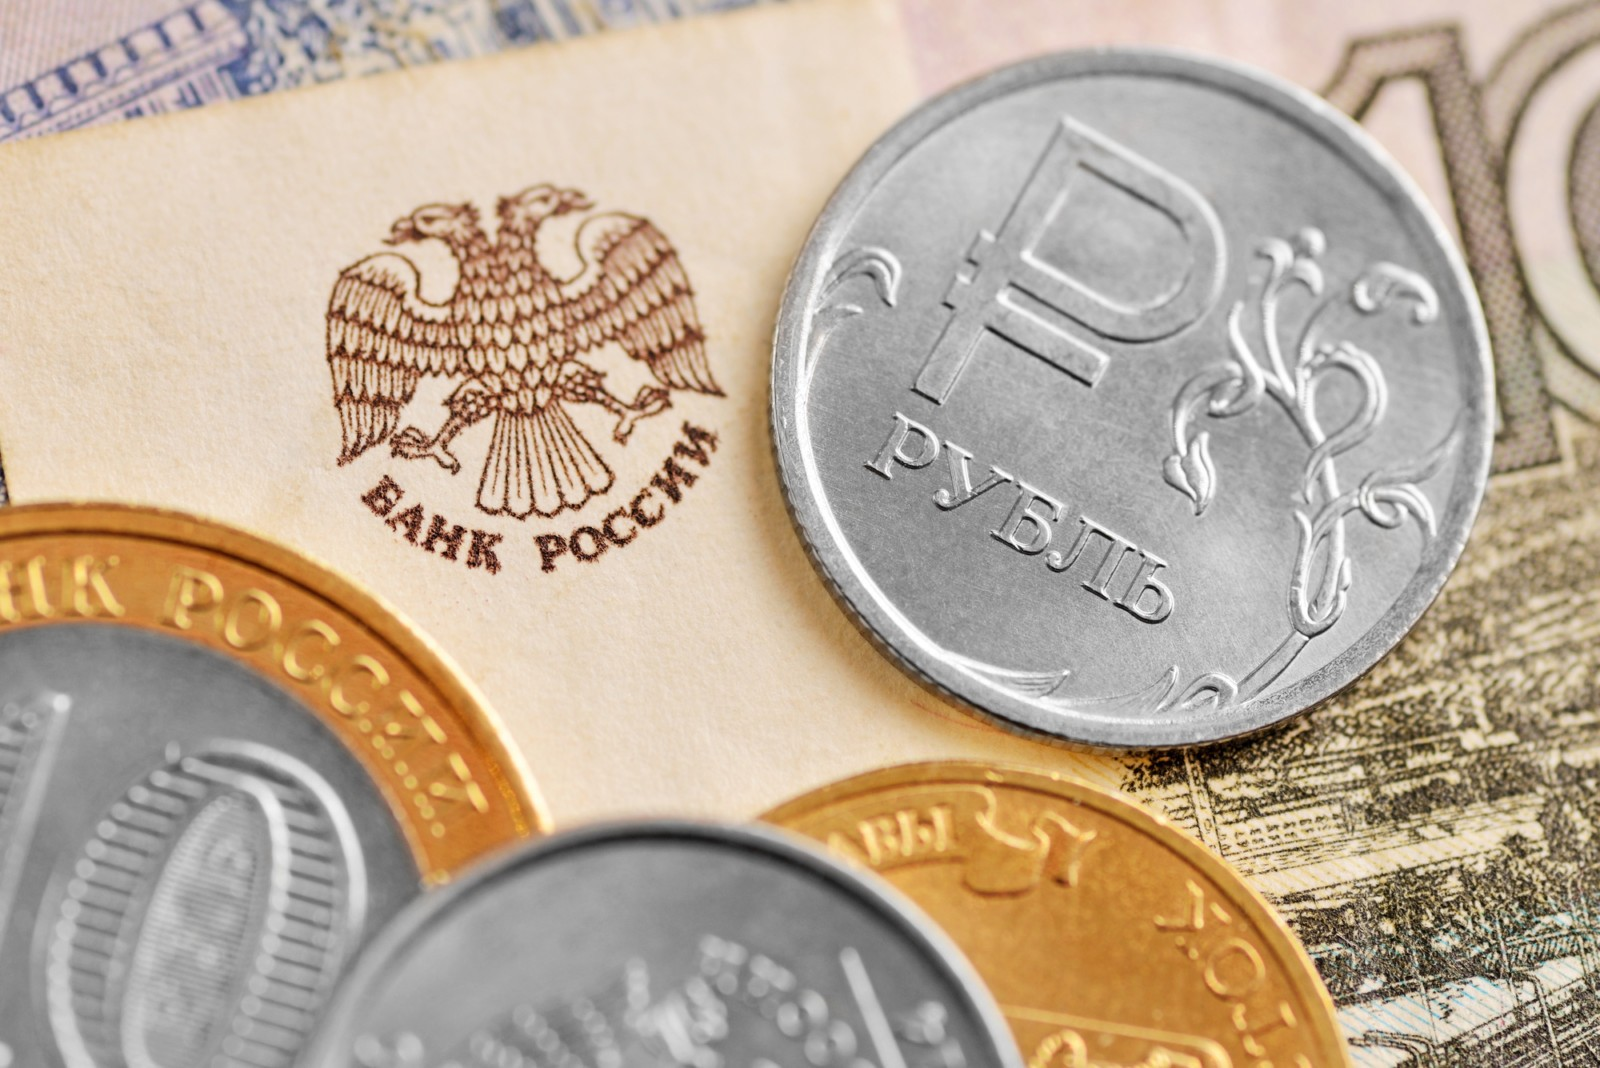 Russian Ruble's Unexpectedly Brightening Outlook Thanks to Sum of Factors